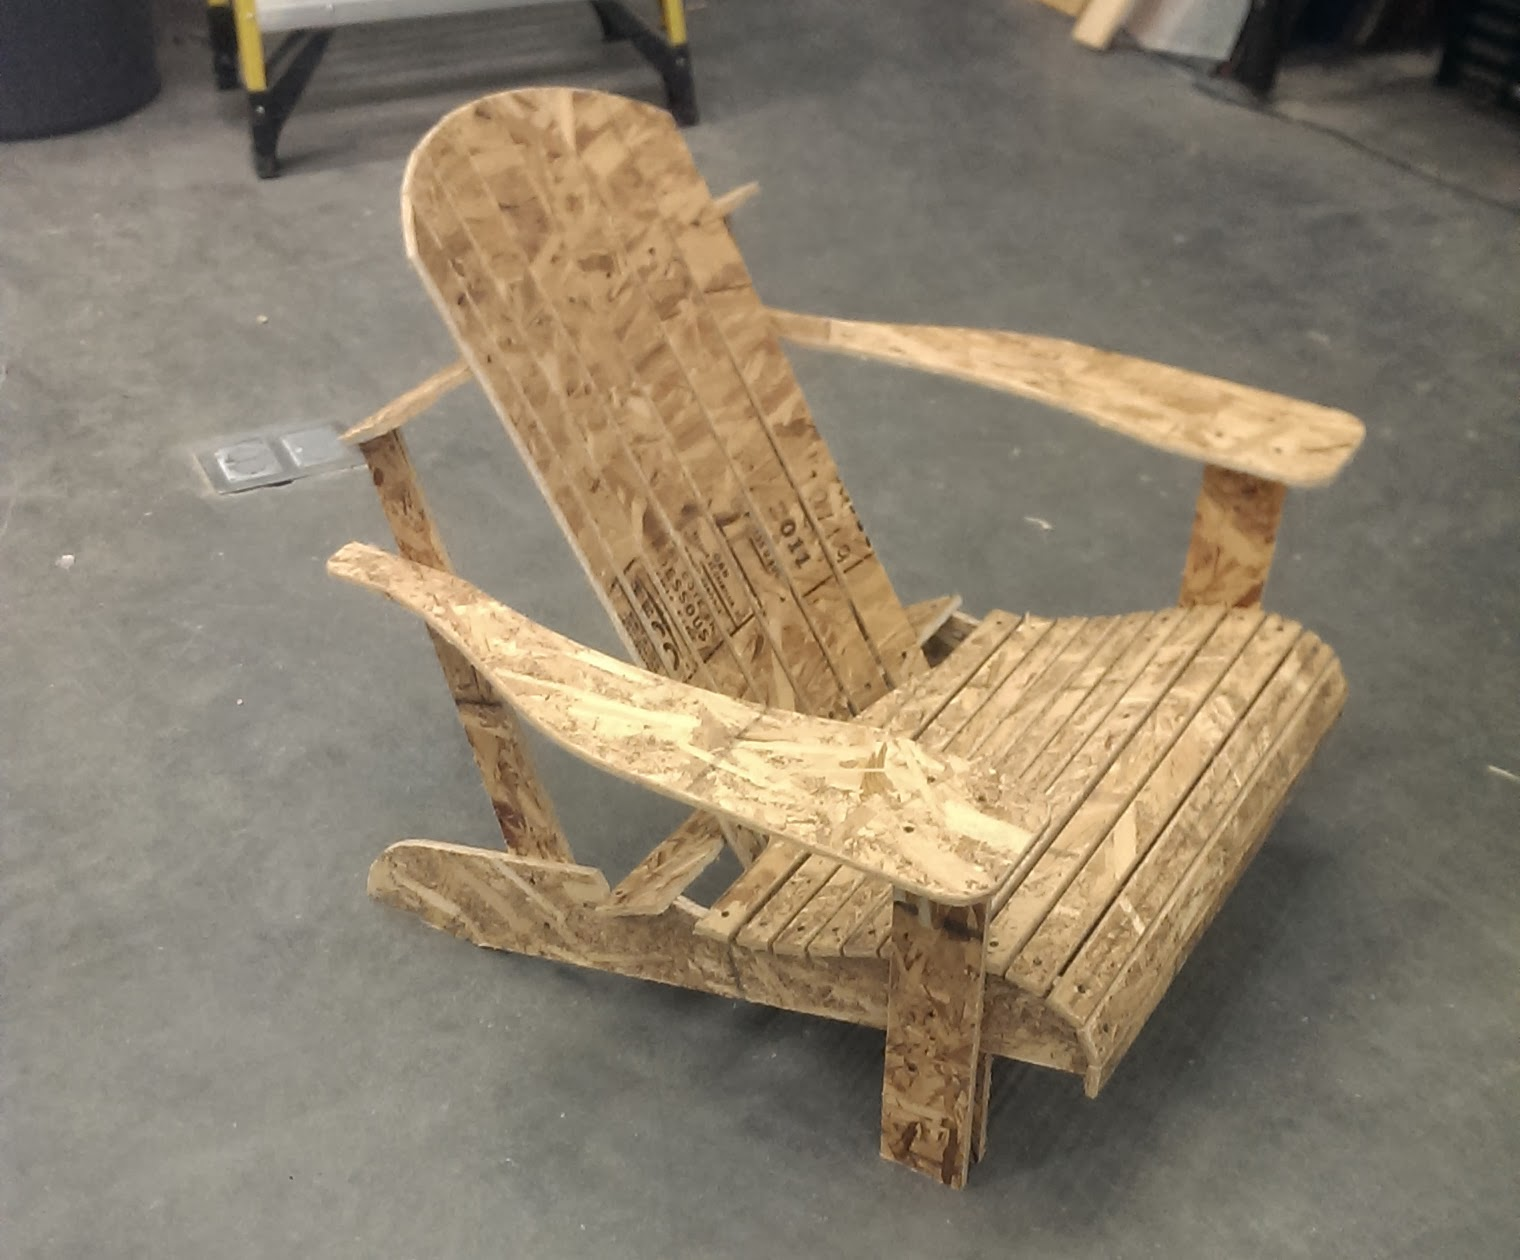 Woodworking Projects Plans: Torkela: Blog Cnc Woodworking Projects